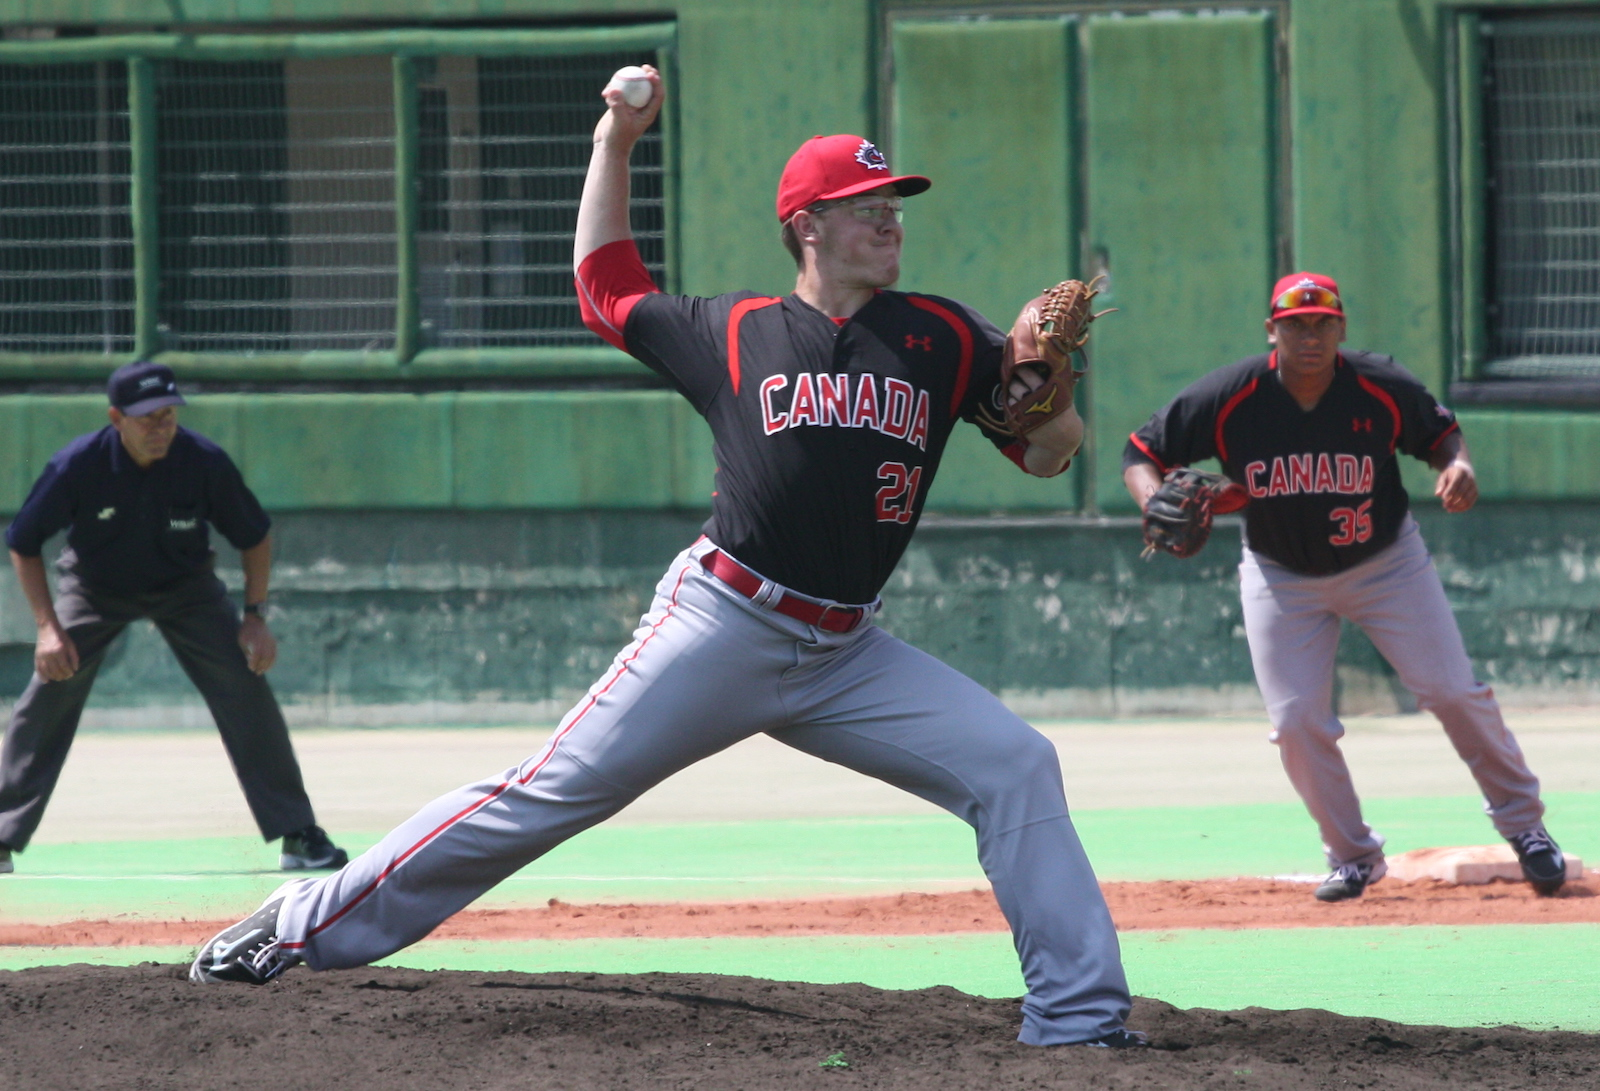 RHP Josh Burgmann (Nanaimo, BC) of the Vauxhall Jets, was impressive for BC Orange and is now headed to the University of Washington Huskies.Photo: Adam Morissette.